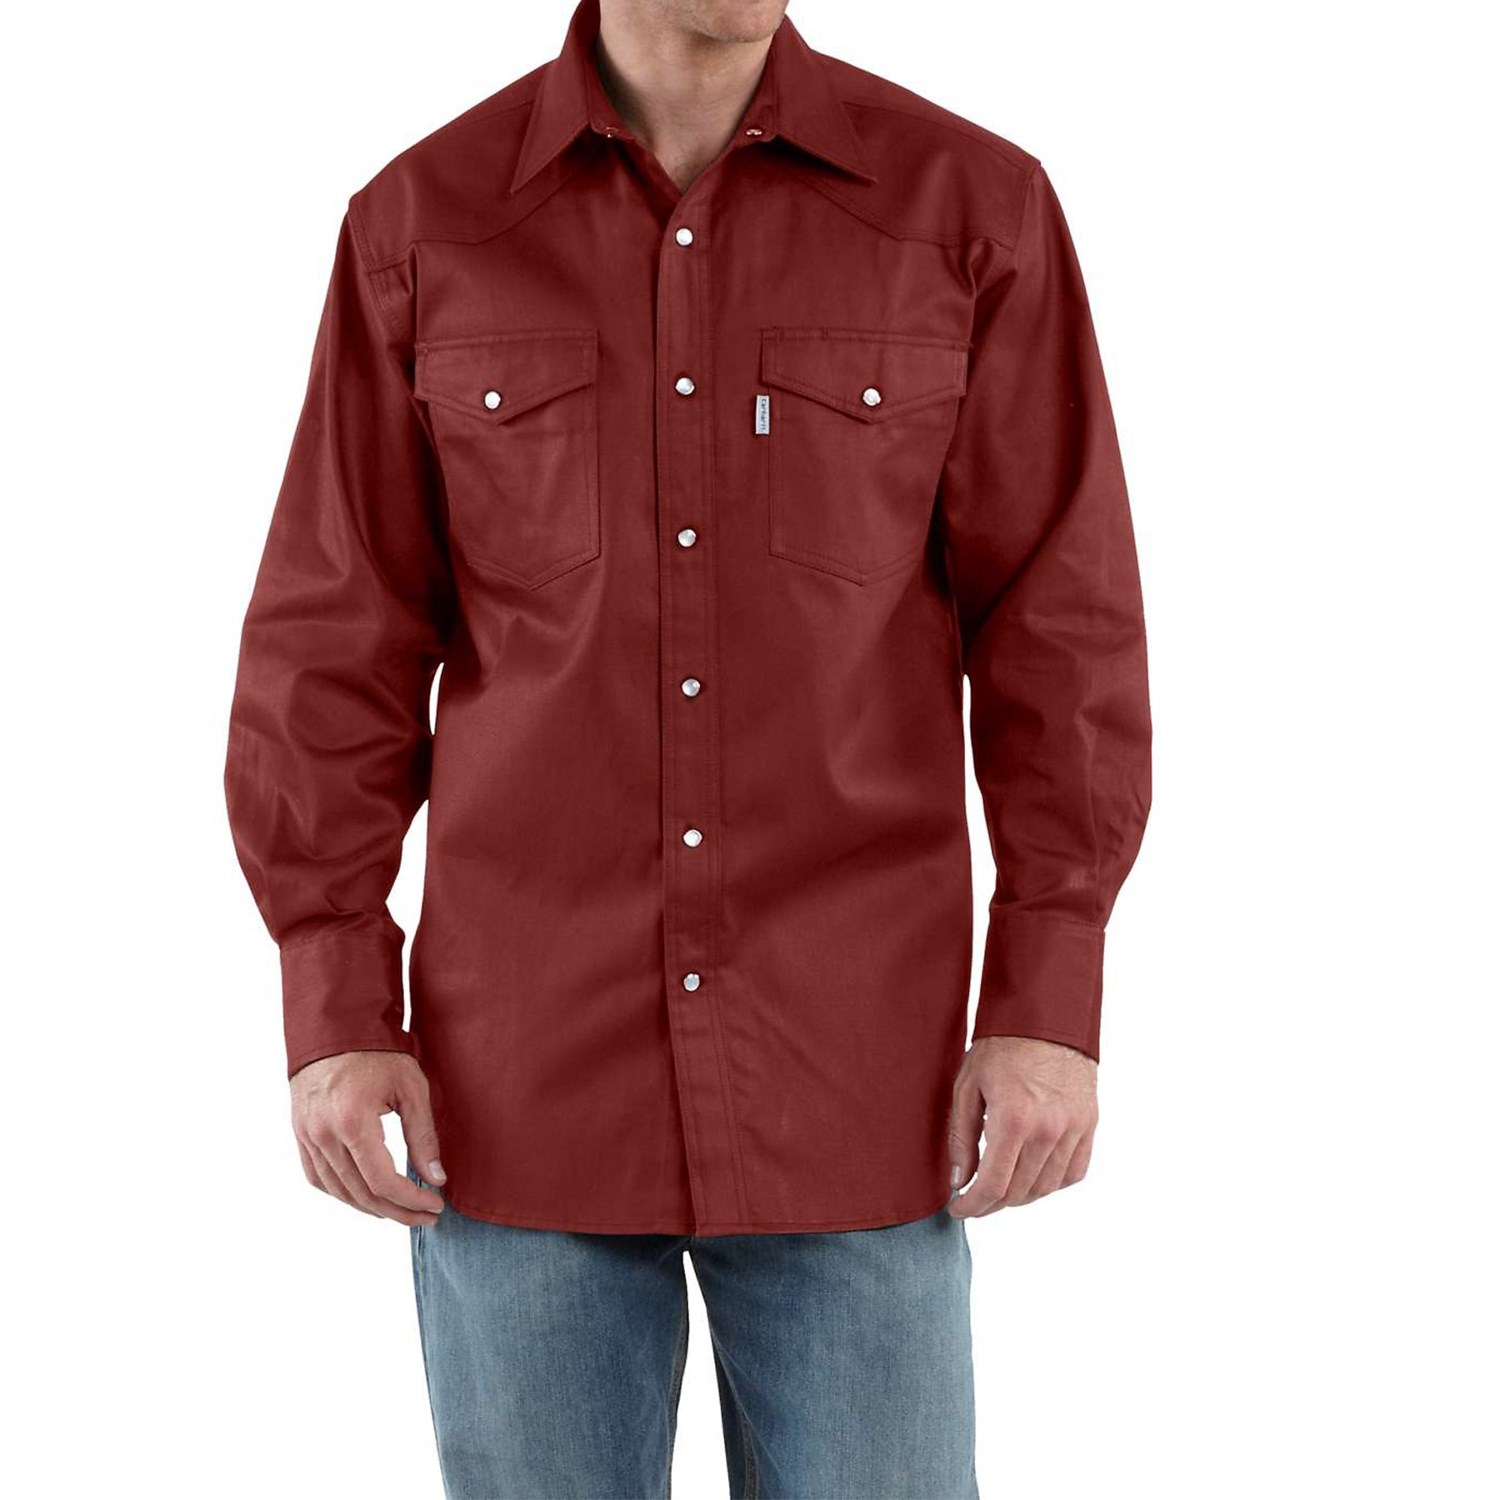 carhartt snap front twill work shirt for tall men